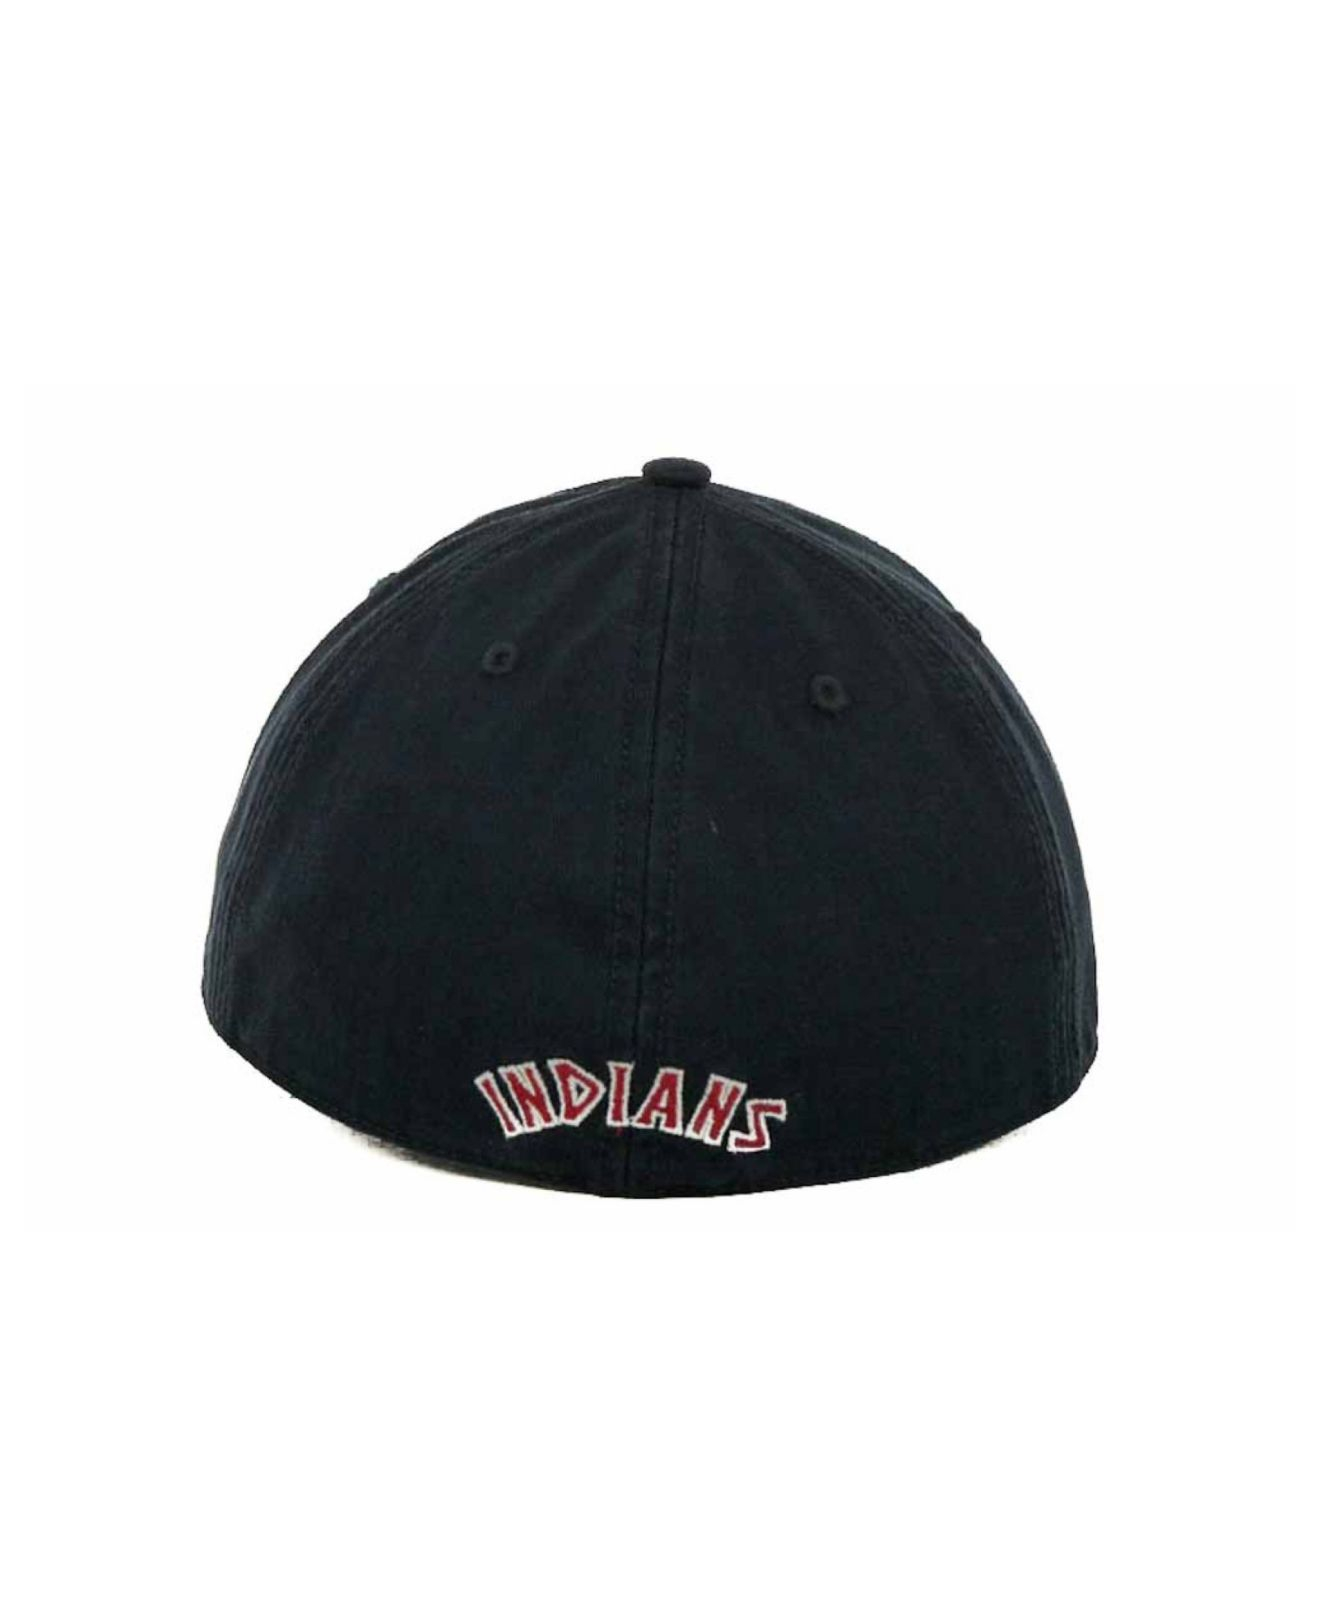 outlet store a30a4 dbf8a ... netherlands 59fifty fitted cap 7 1 8 new era 39thirty mlb new york  yankees hat red